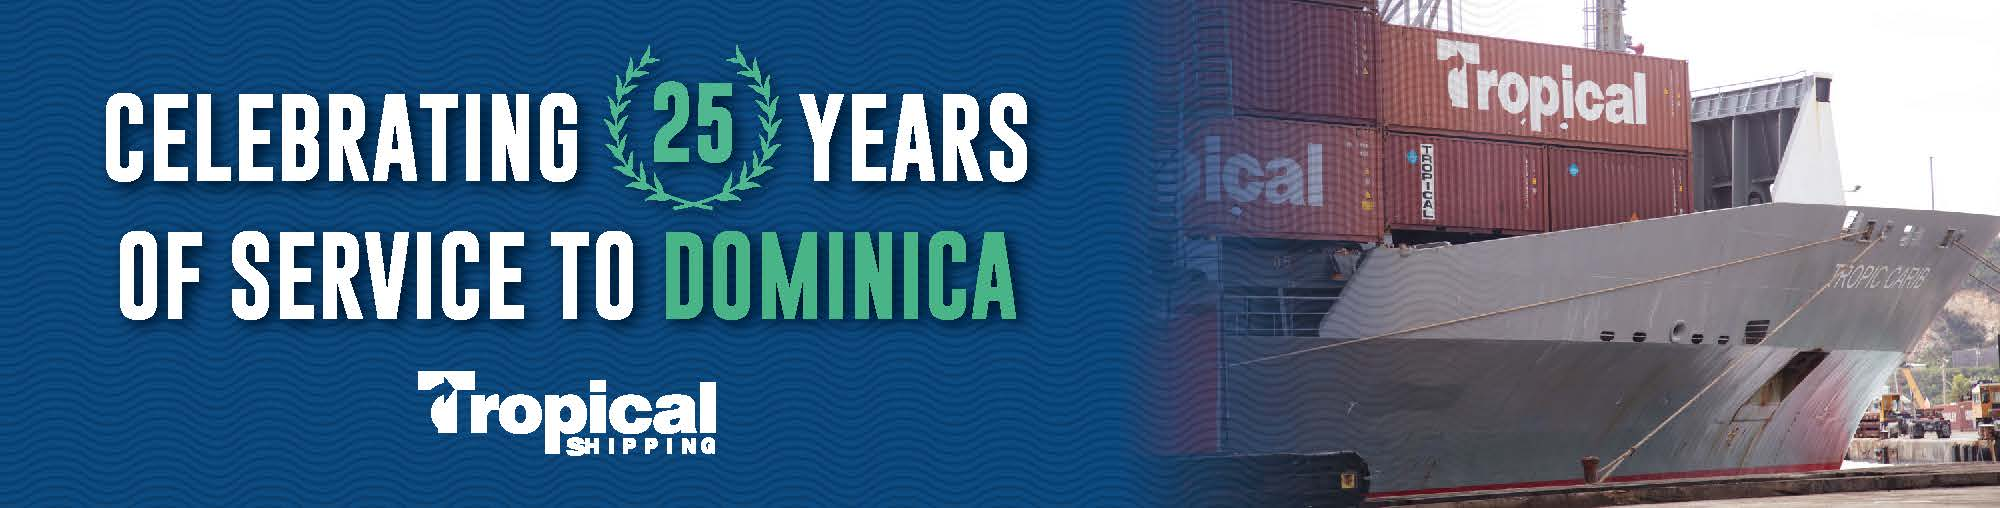 Celebrating 25 Years of Service to Dominica